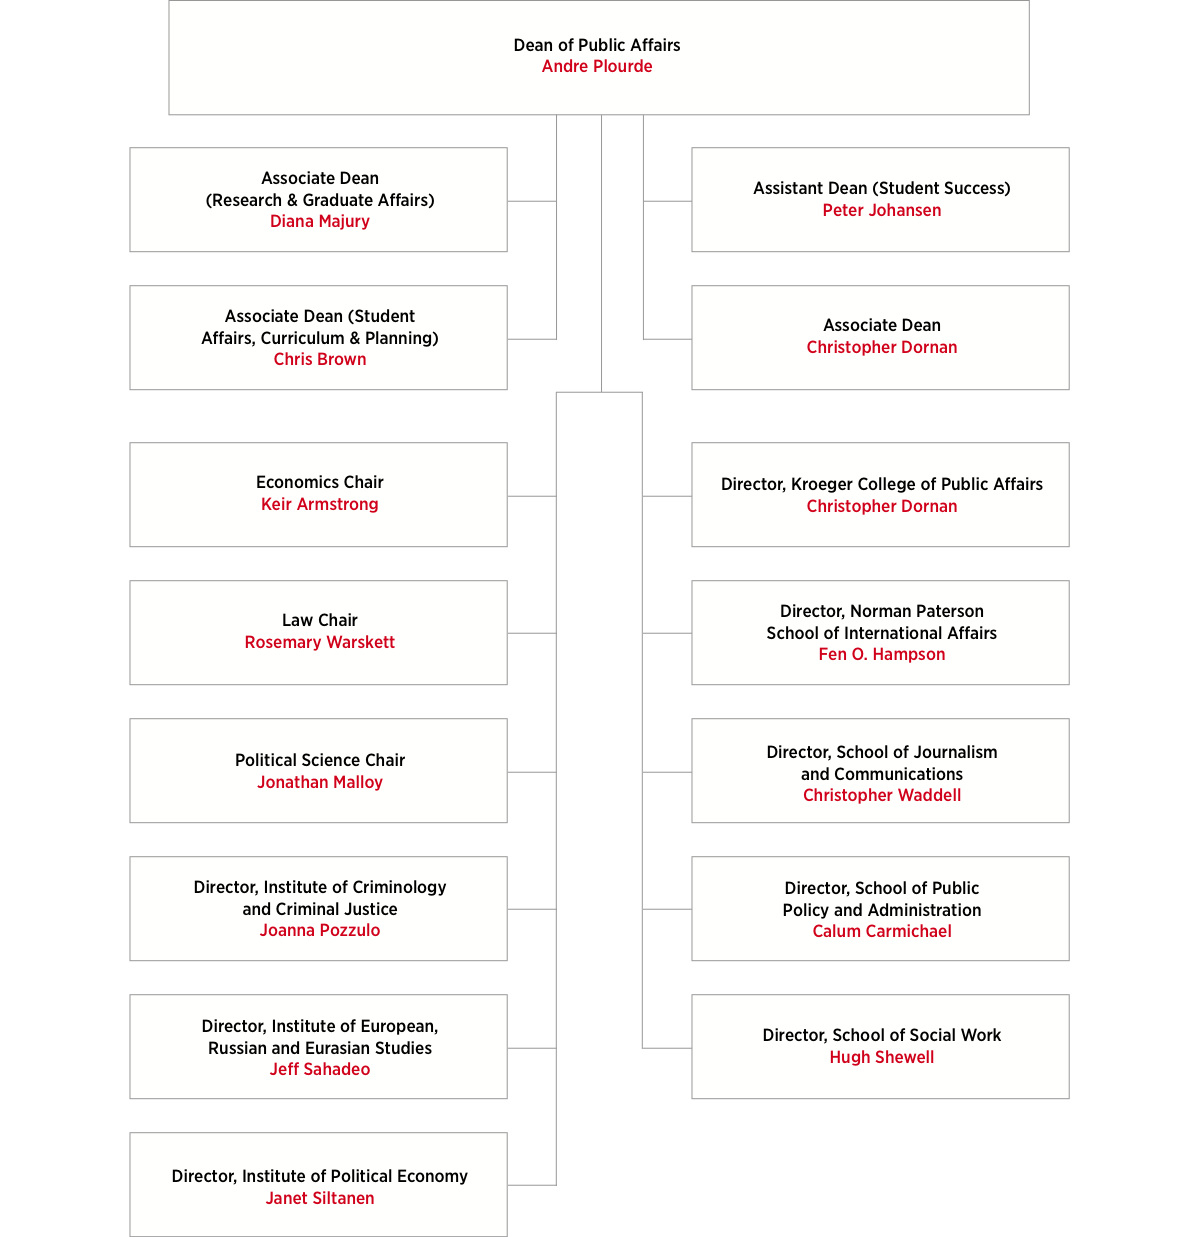 Faculty of Public Affairs Organizational Chart